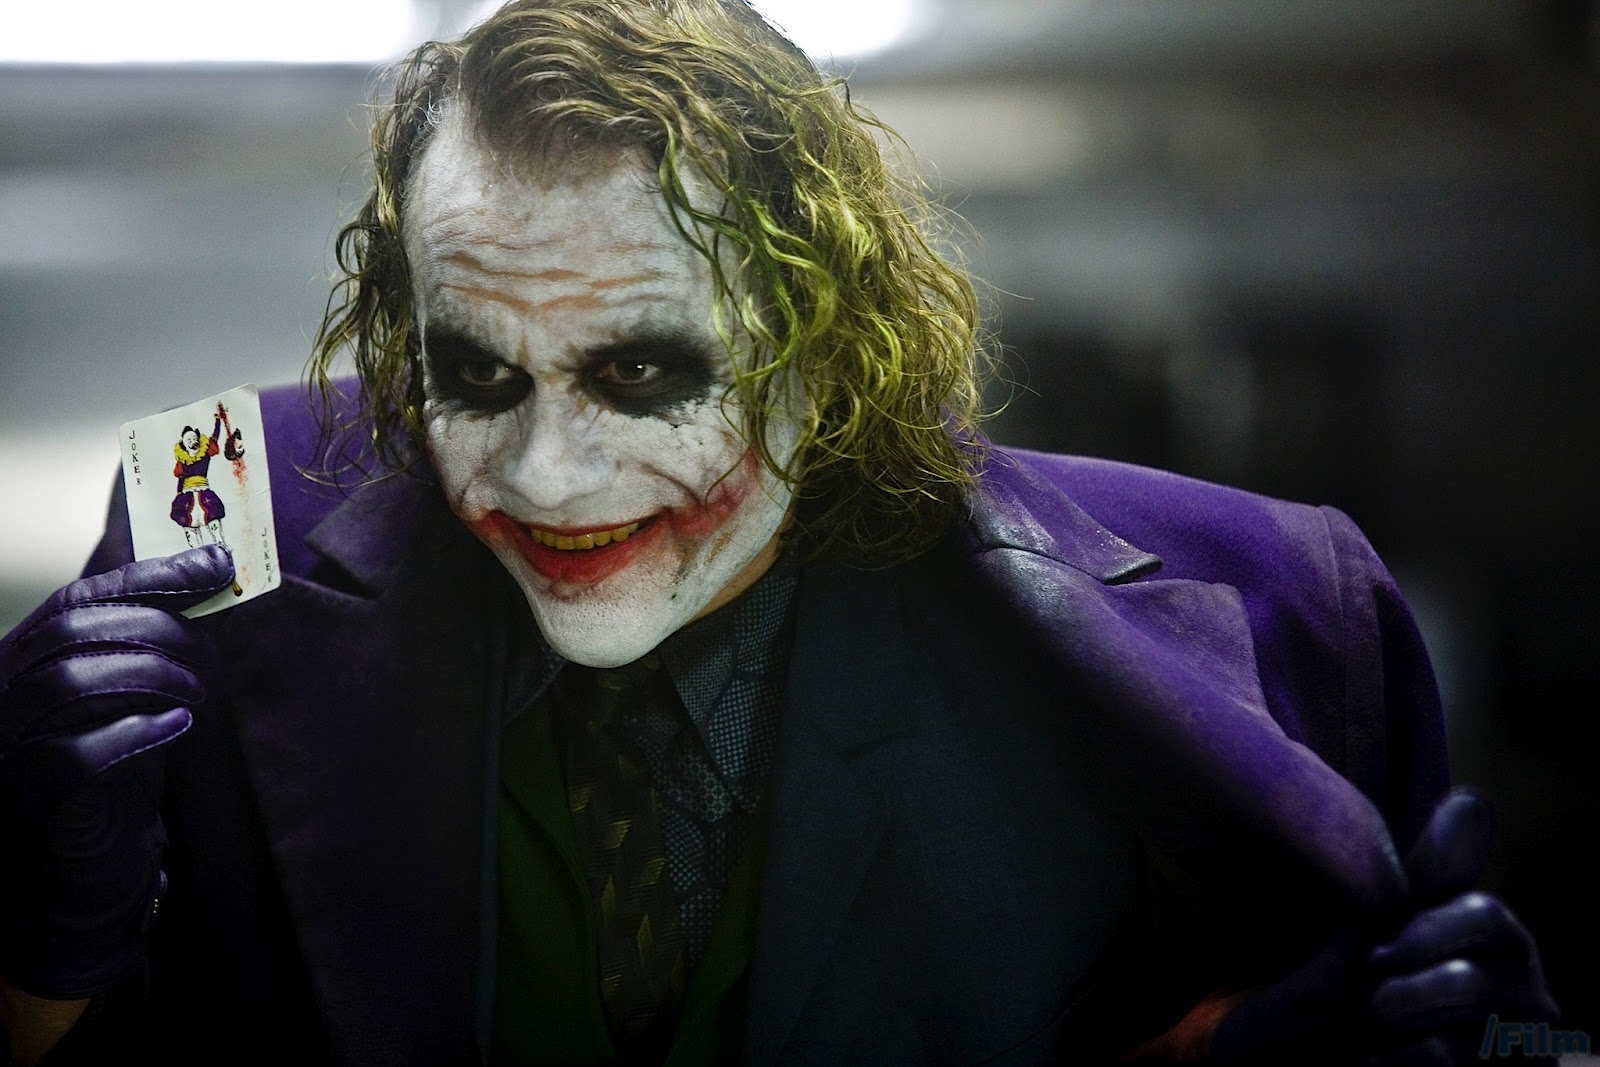 http://1.bp.blogspot.com/-ktpGFlqDLqE/UAdNOmn7RrI/AAAAAAAAAT8/Ypotlv7GOb8/s1600/the_dark_knight_heath_ledger_joker.jpg